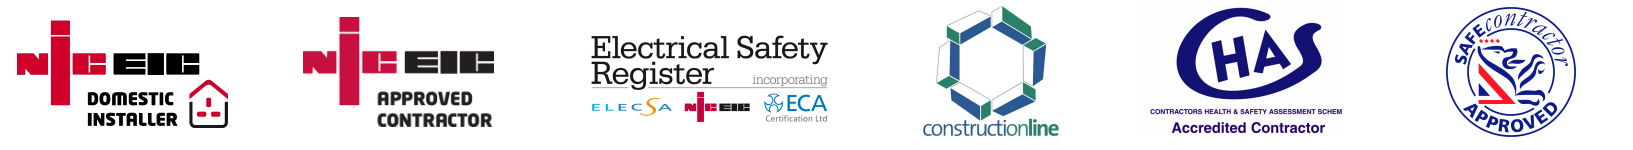 Accreditations for EW Edwardson Ltd.